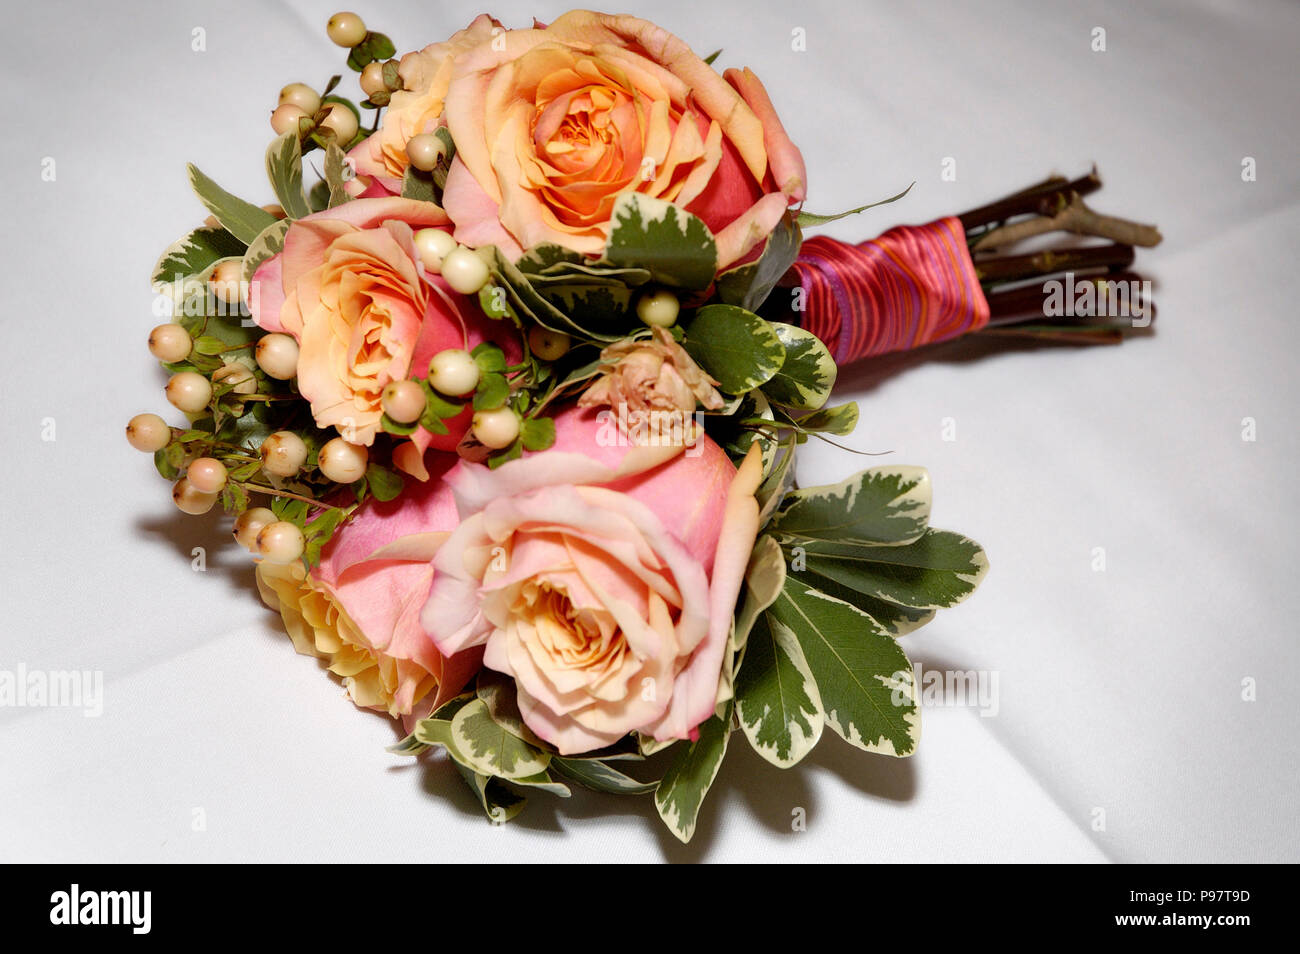 A Bouquet Of Wedding Flowers Pink And Orange Or Peach Colored Roses